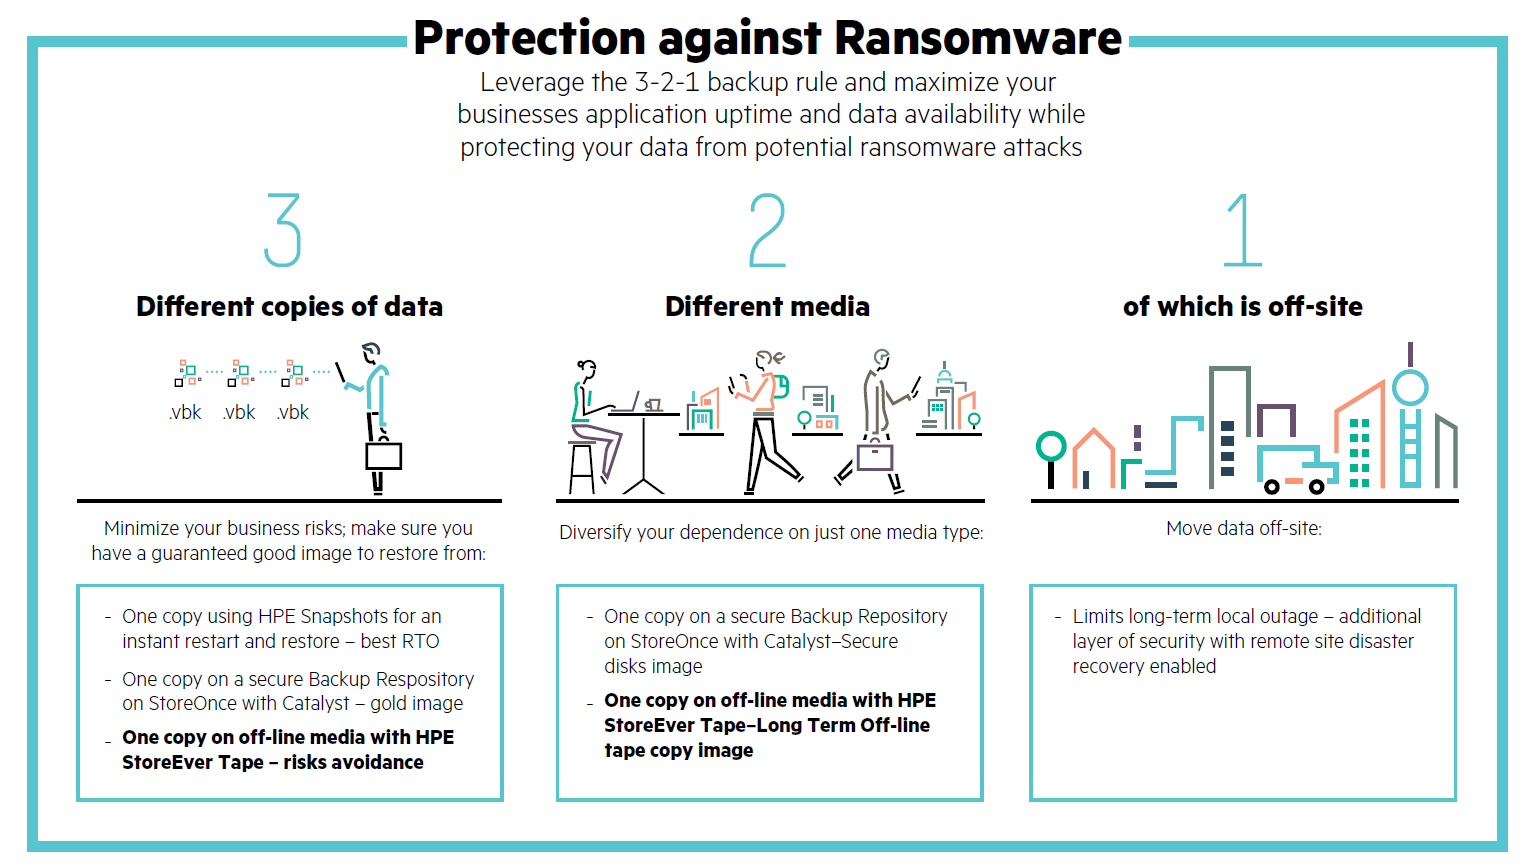 Protect against ransomware.png